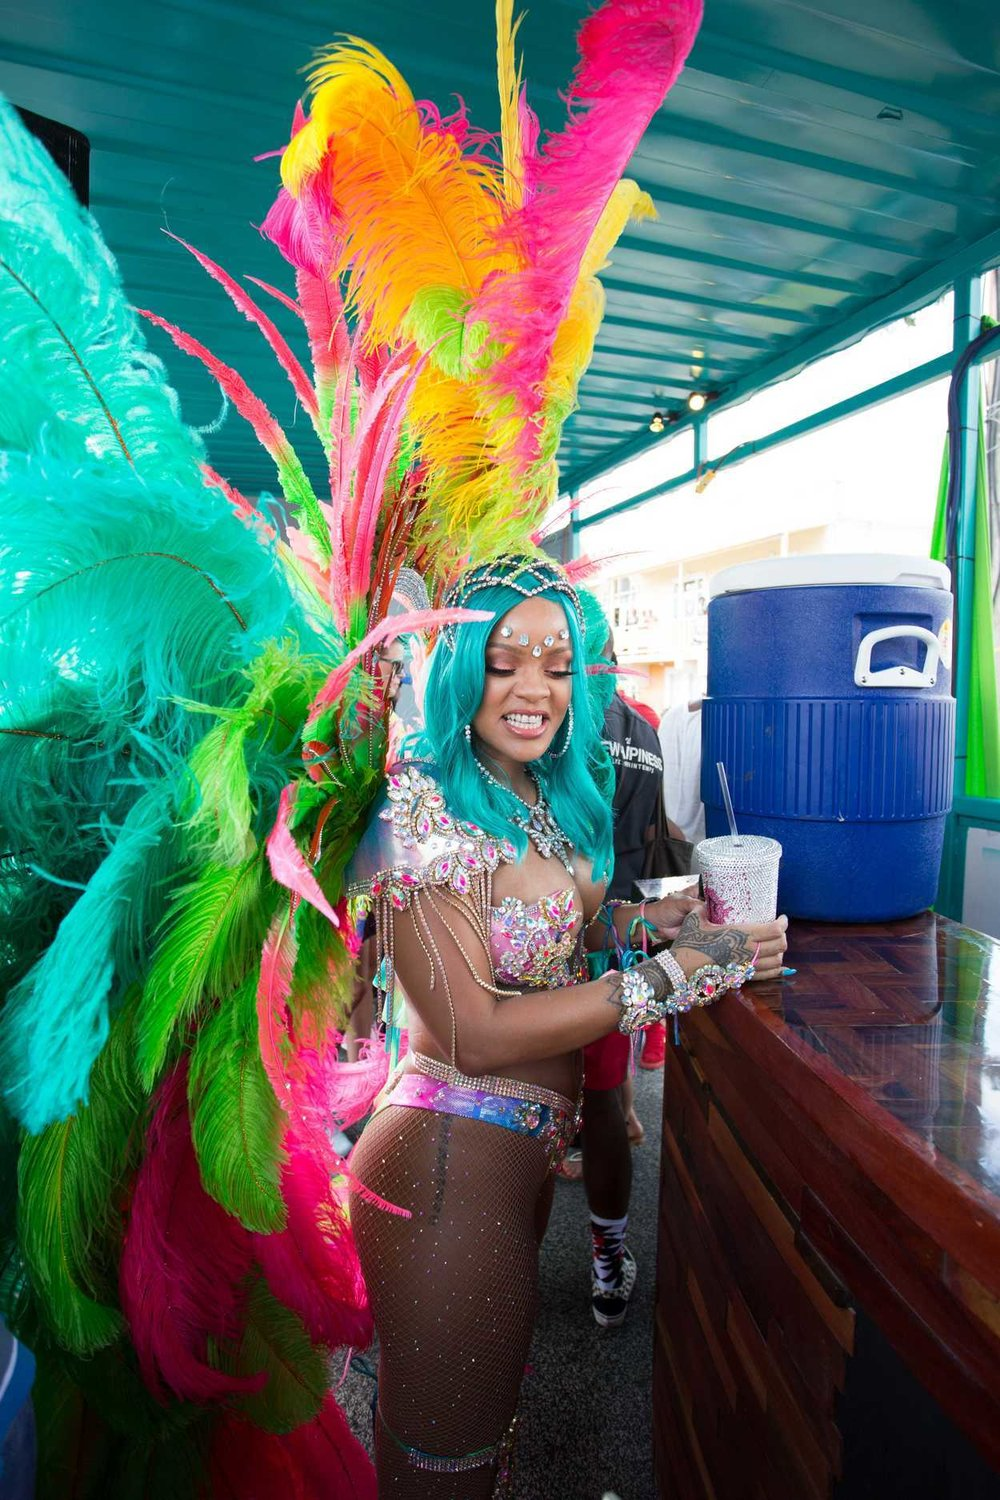 rihanna-at-a-carnival-in-barbados-08-07-2017-3.jpg